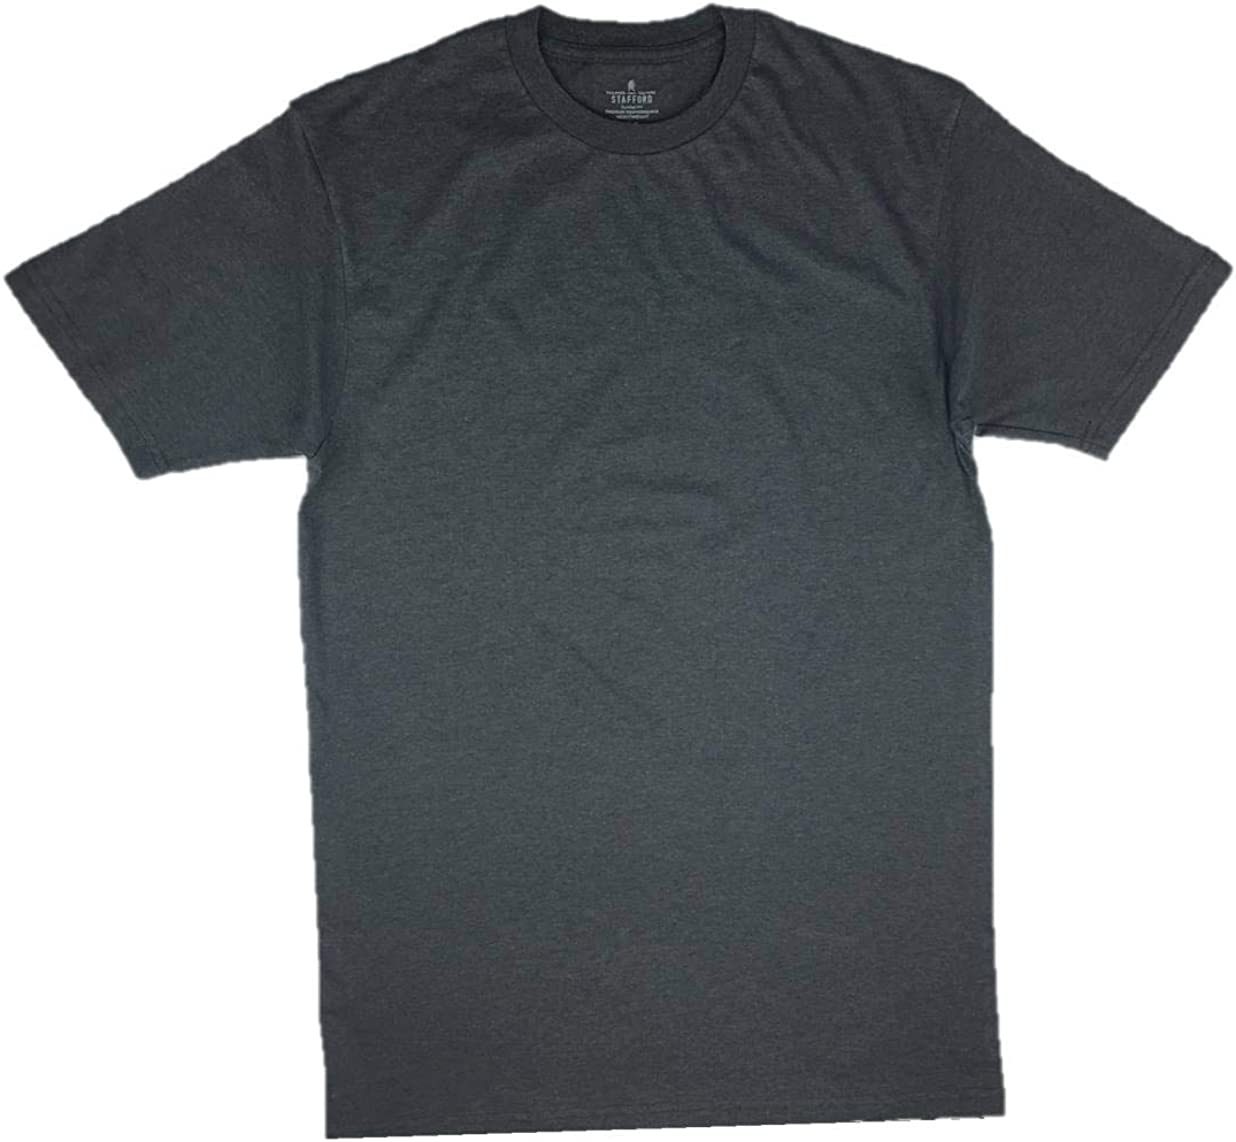 Short Sleeve Stafford Men/'s Tall//Extra Tall 100/% Heavy Weight Cotton Crew Neck Undershirts 3 Pack Black and Grey